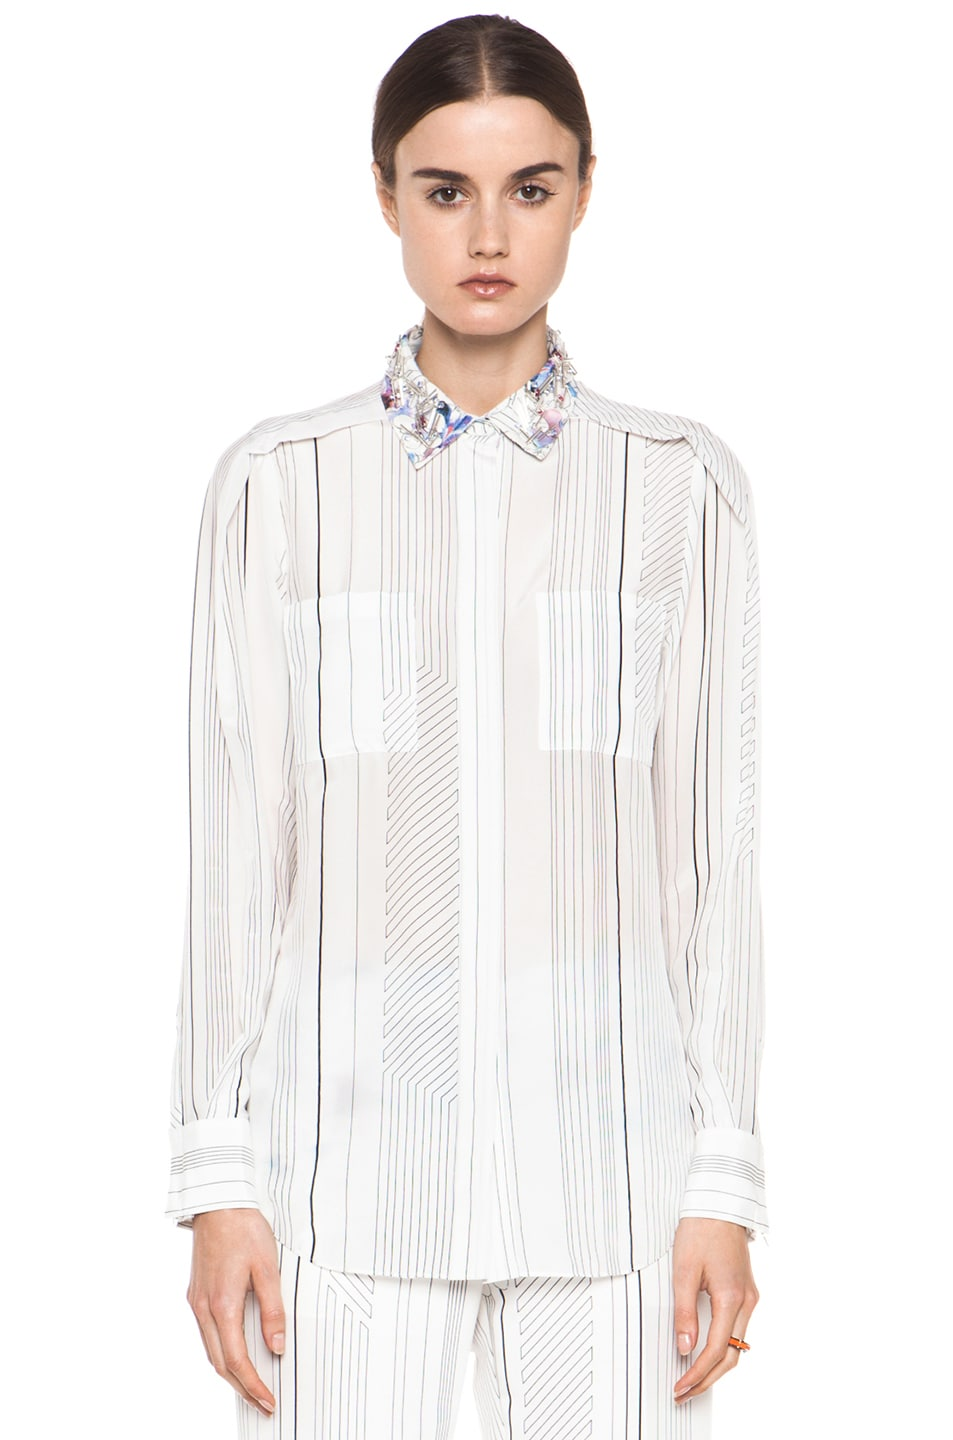 Image 2 of 3.1 phillip lim Pleat Shoulder Shirt with Embellished Collar in Antique White